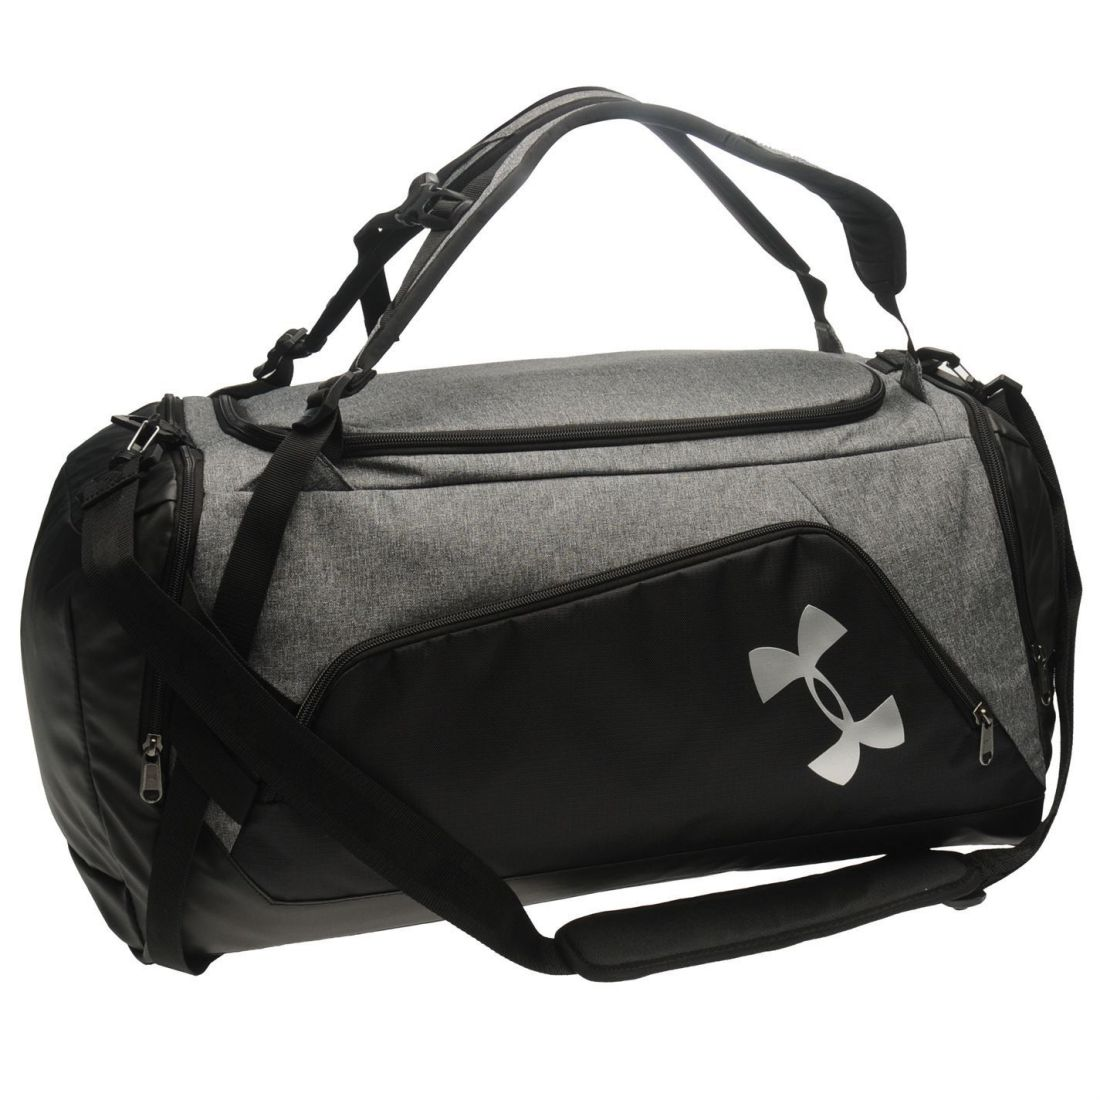 5674f3c726 Details about Under Armour Unisex Contain Duo Duffel Bag Holdall  Lightweight Water Repellent